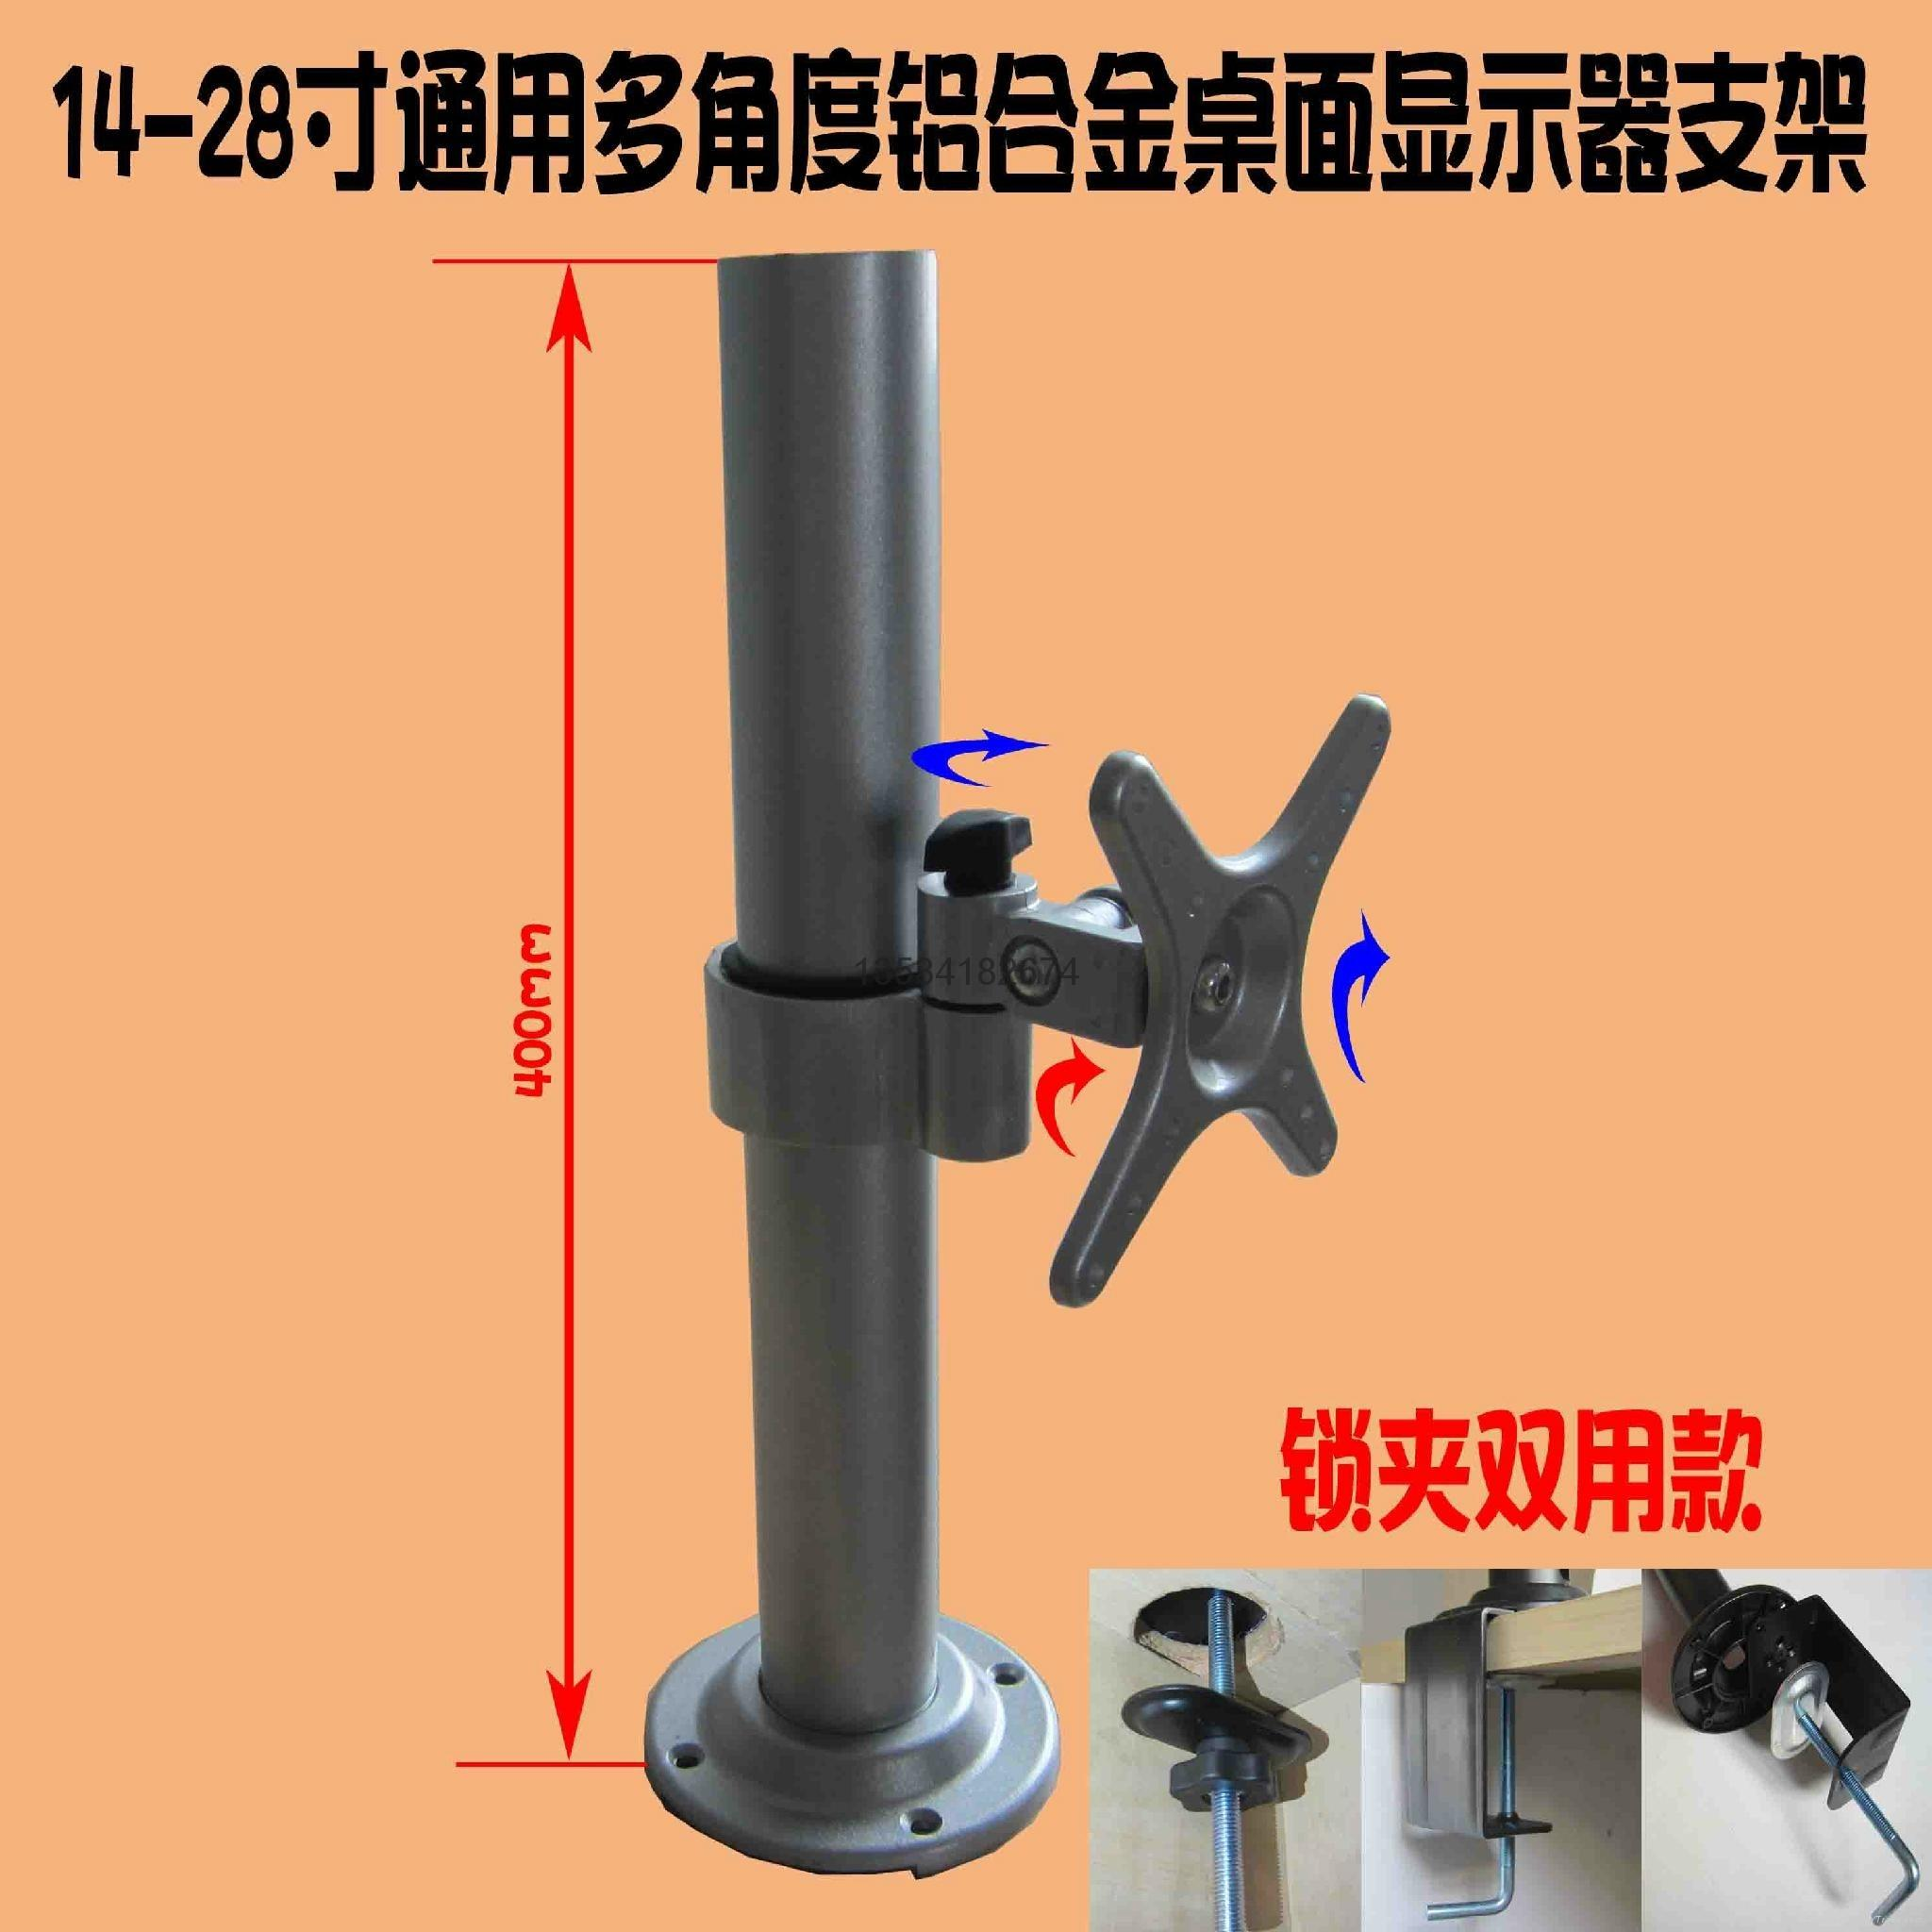 Lcd Stand Bracket S511 China Manufacturer Display